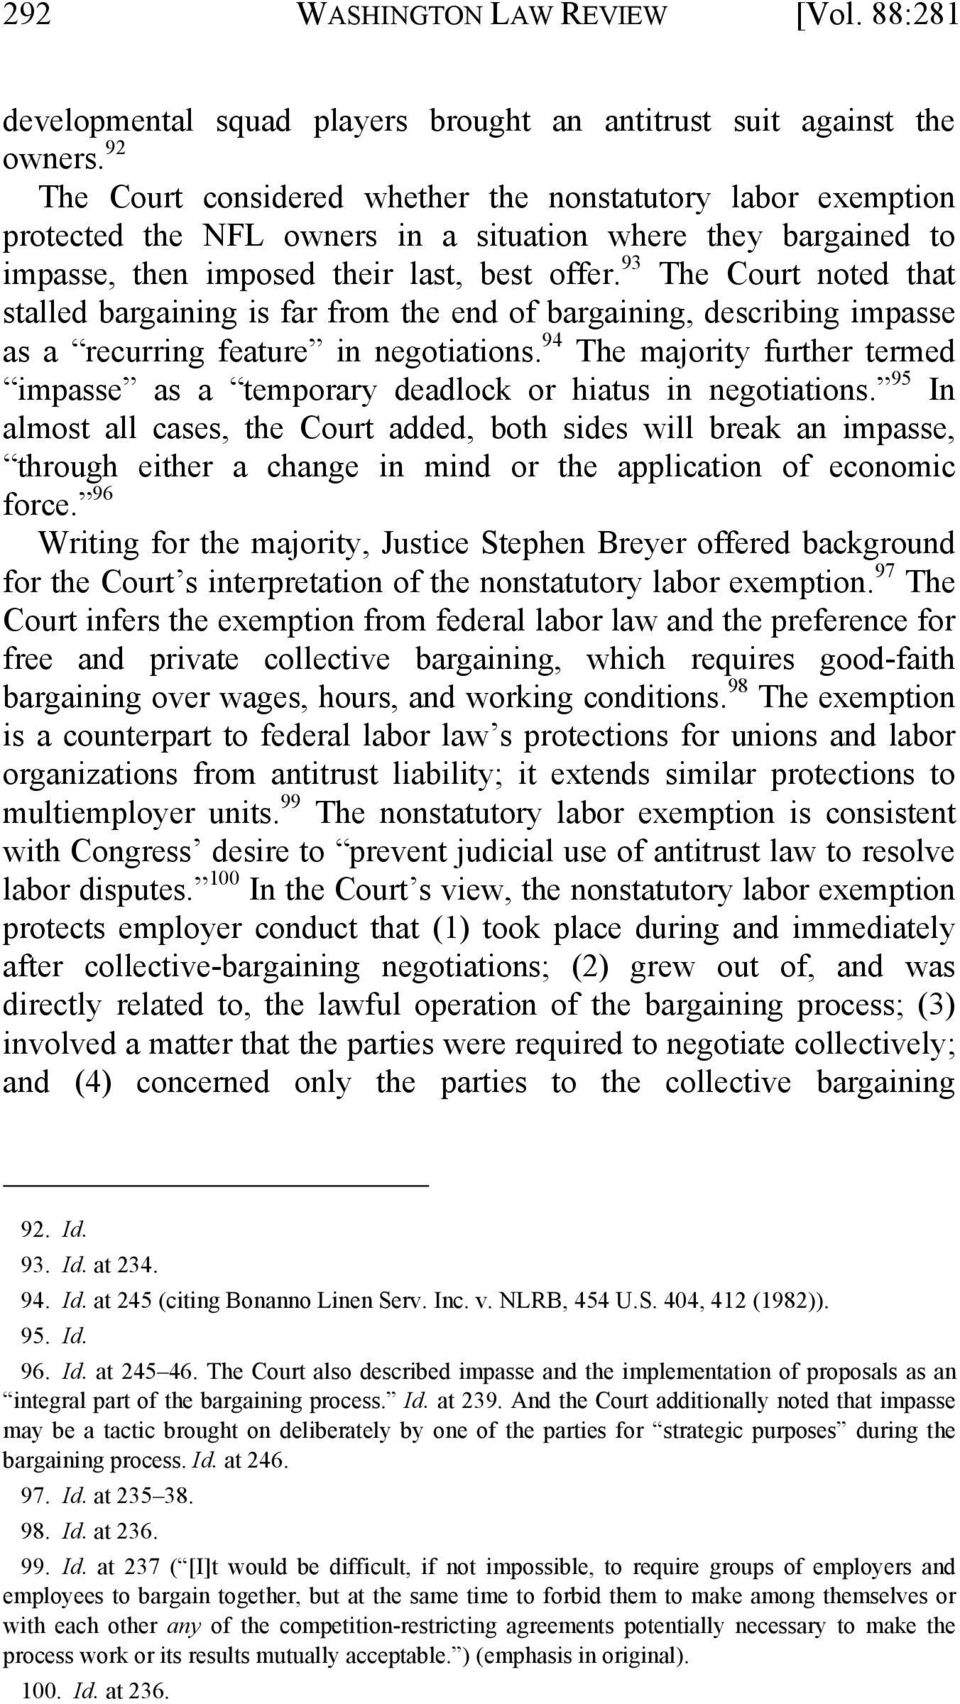 93 The Court noted that stalled bargaining is far from the end of bargaining, describing impasse as a recurring feature in negotiations.